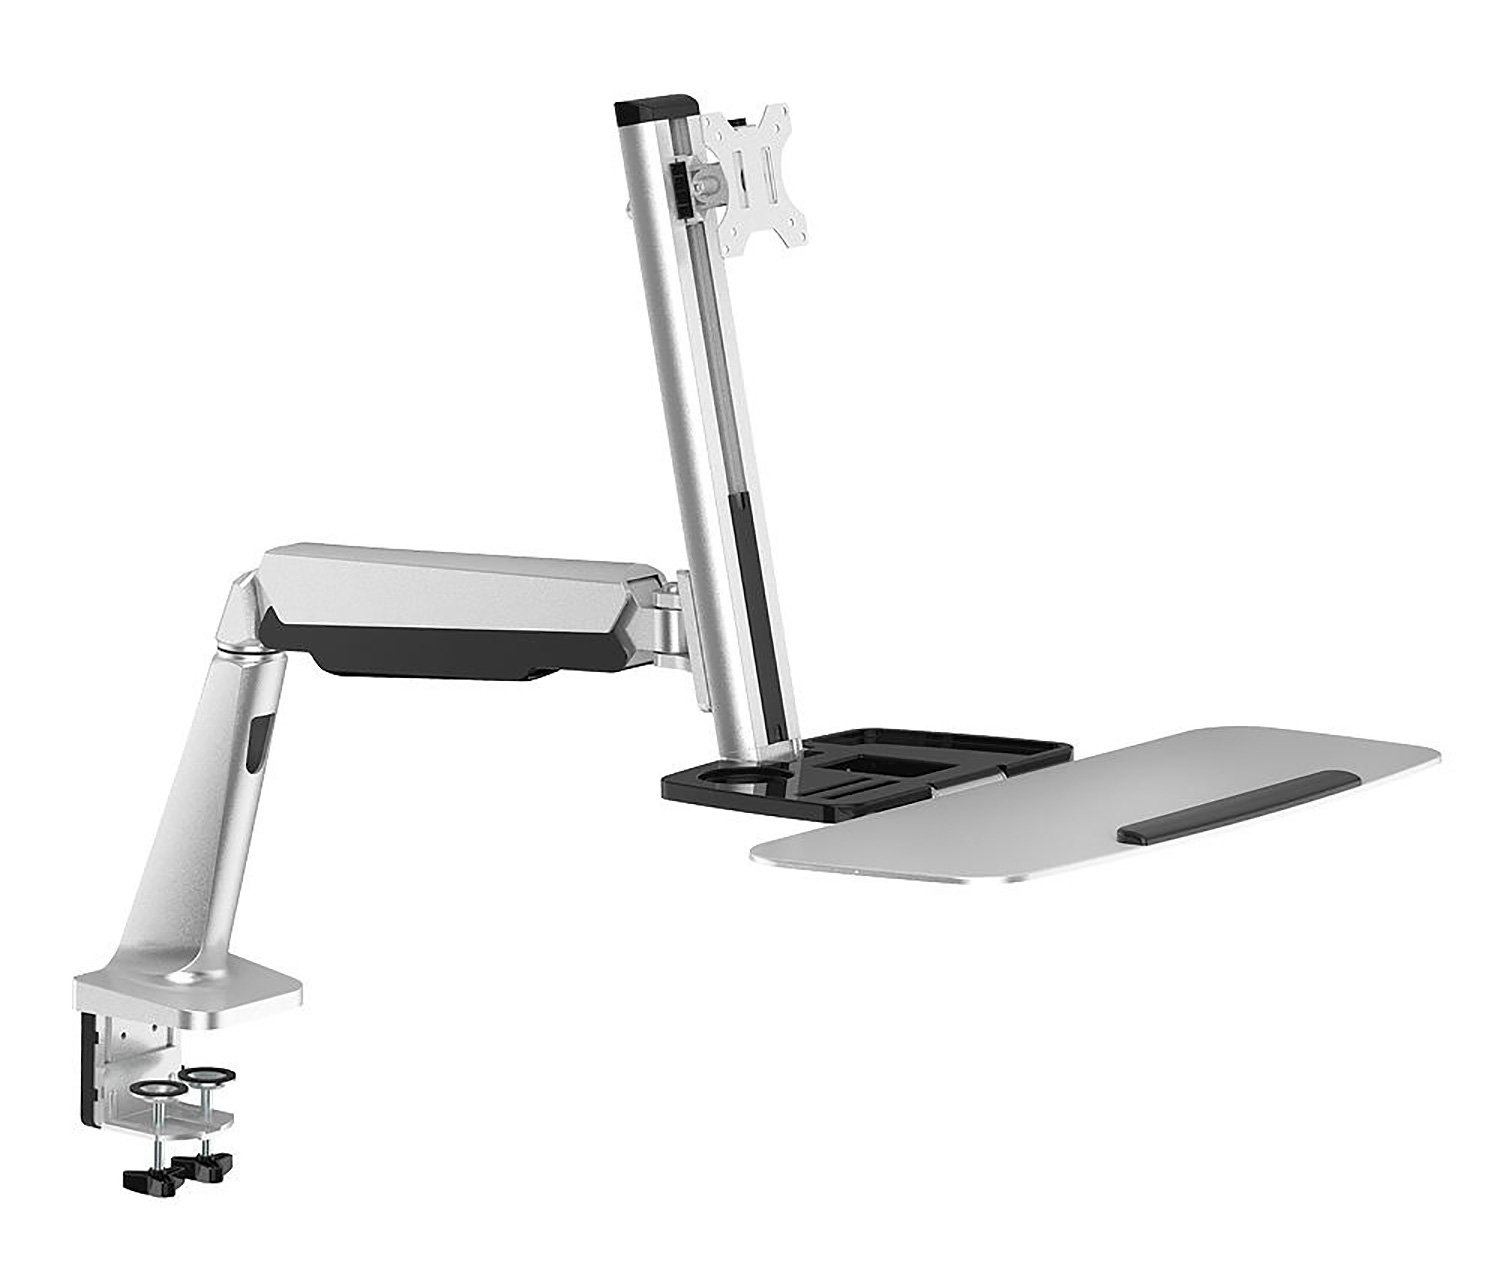 PrimeCables Fully Adjustable Standing Desk Mount with Single Monitor Mount for Most 13''-32 LED LCD Screen with 75 x 75 and 100 x 100 VESA Patterns - Multifunctional Gas Spring Transition Workstation with Keyboard Tray (Ergonomic, Counterbalance)